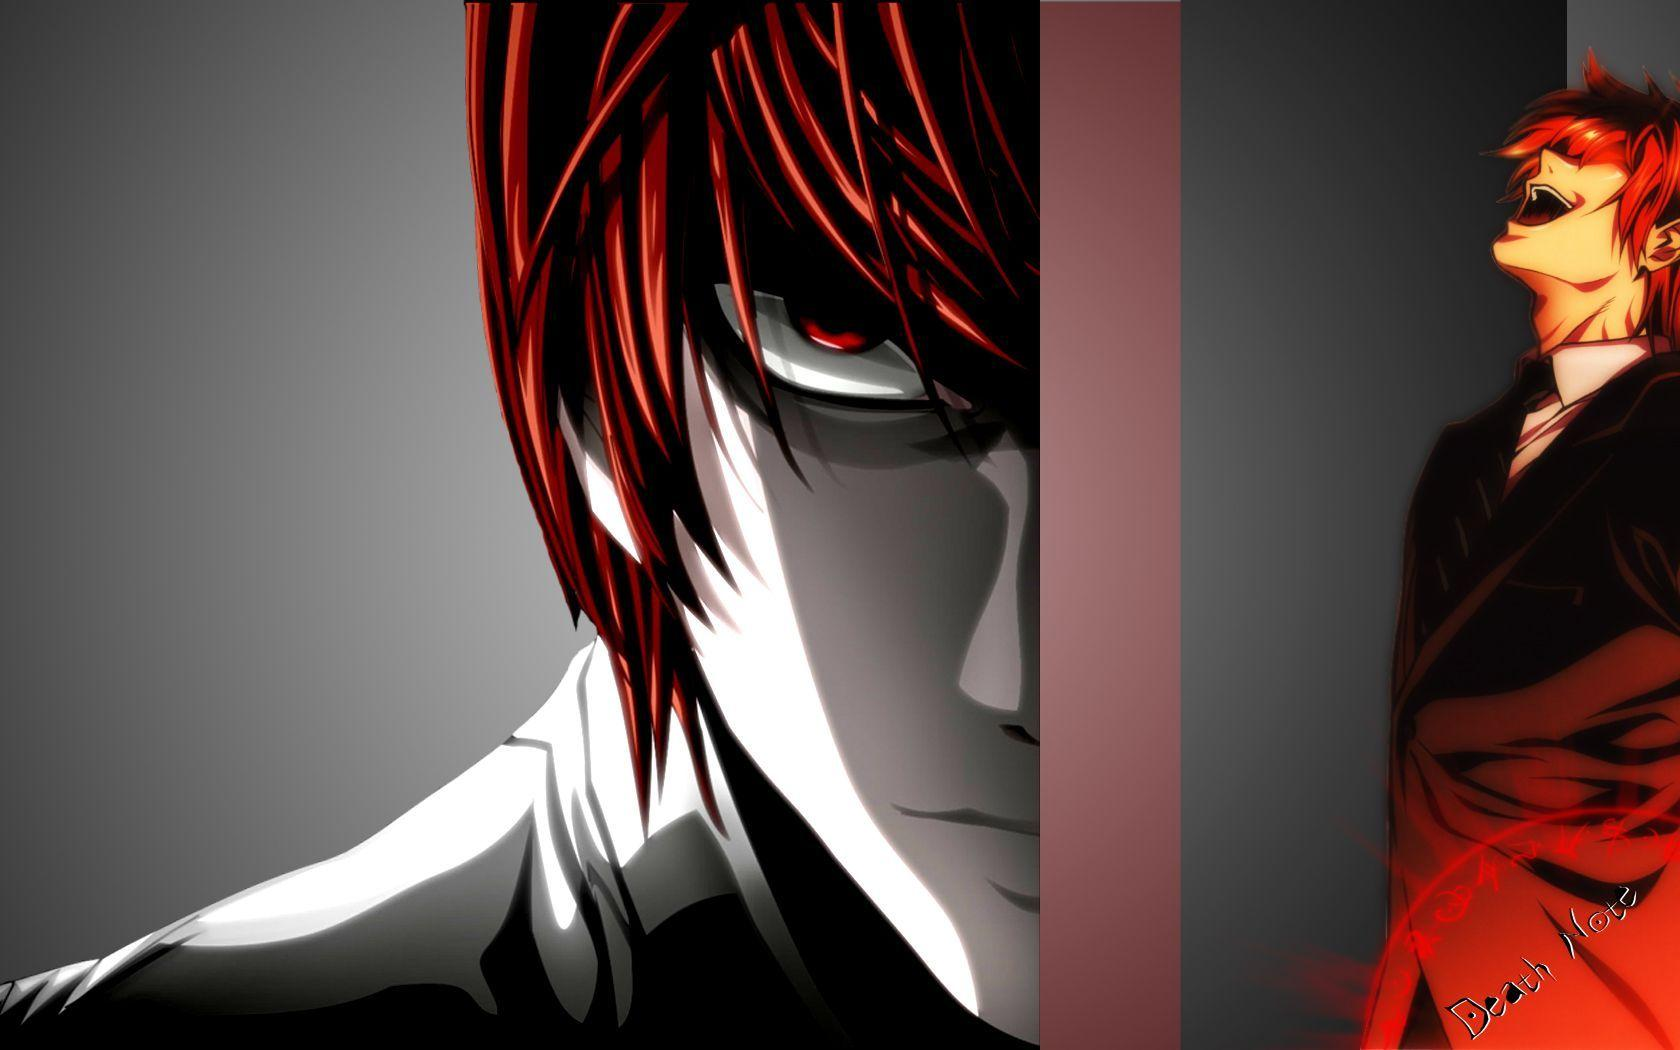 Free Download Light Yagami Wallpapers 1680x1050 For Your